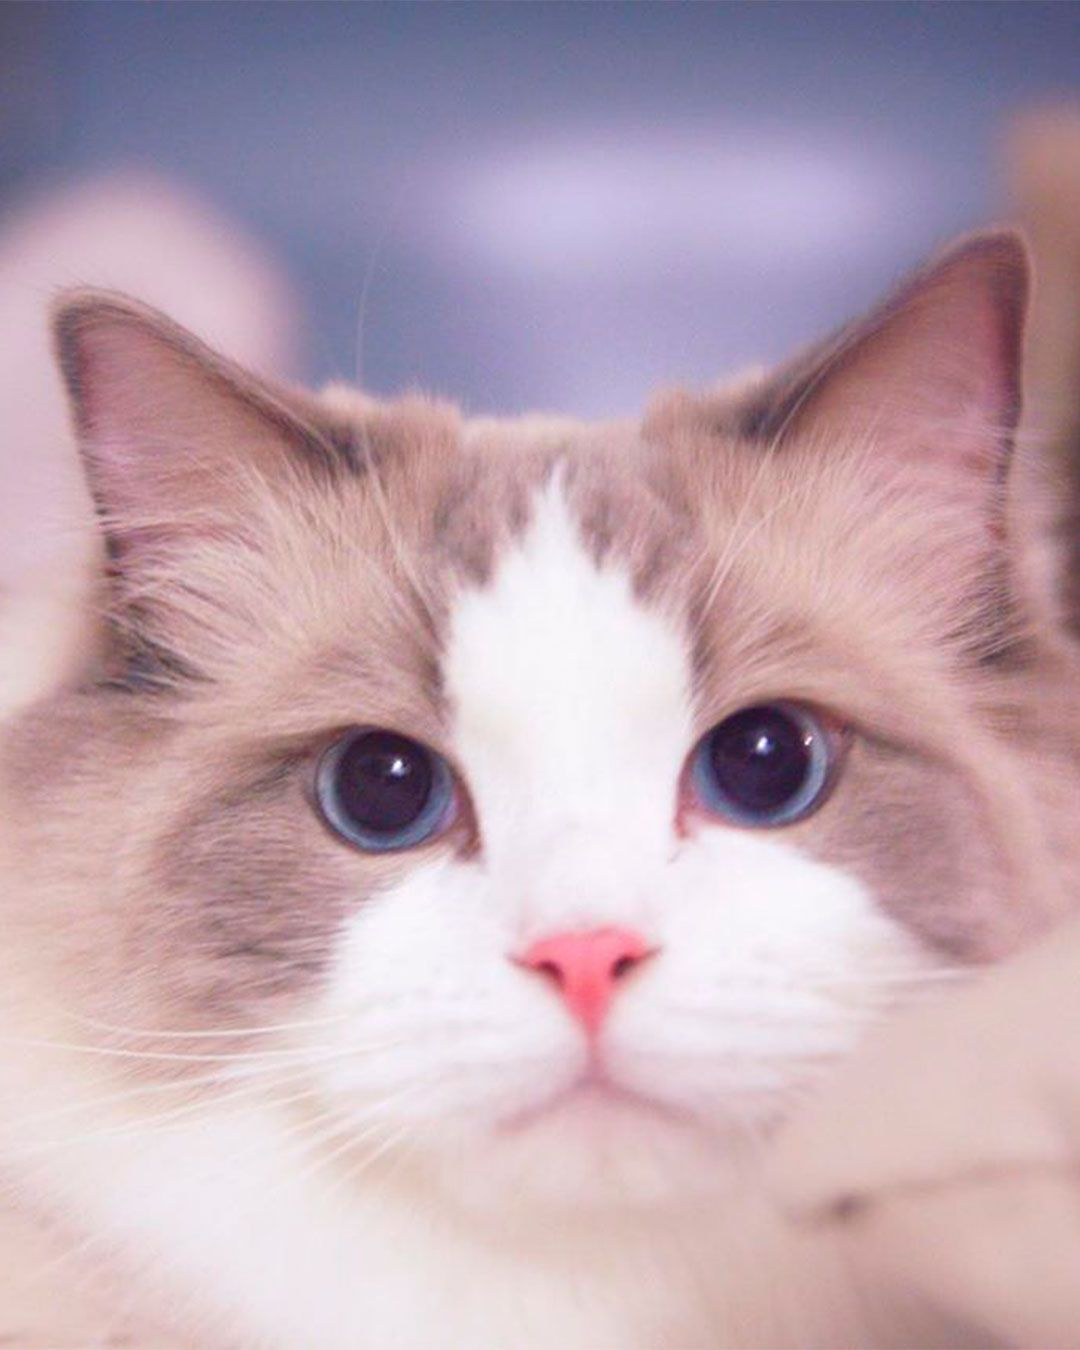 Lovely Cats Pictures In 2020 Cute Cat Gif Cat Pics Kitten Images